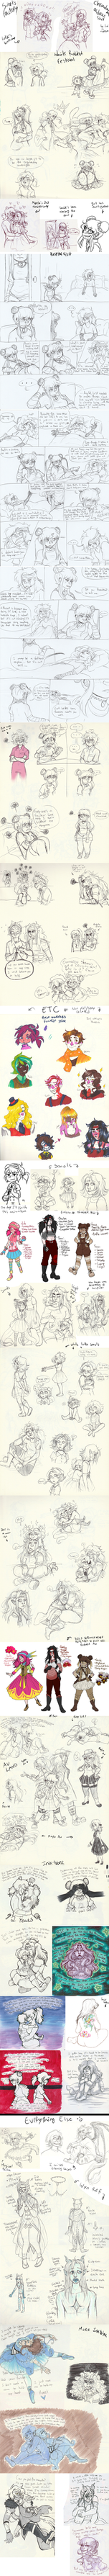 another 3 mile long sketchdump by IneMiSol